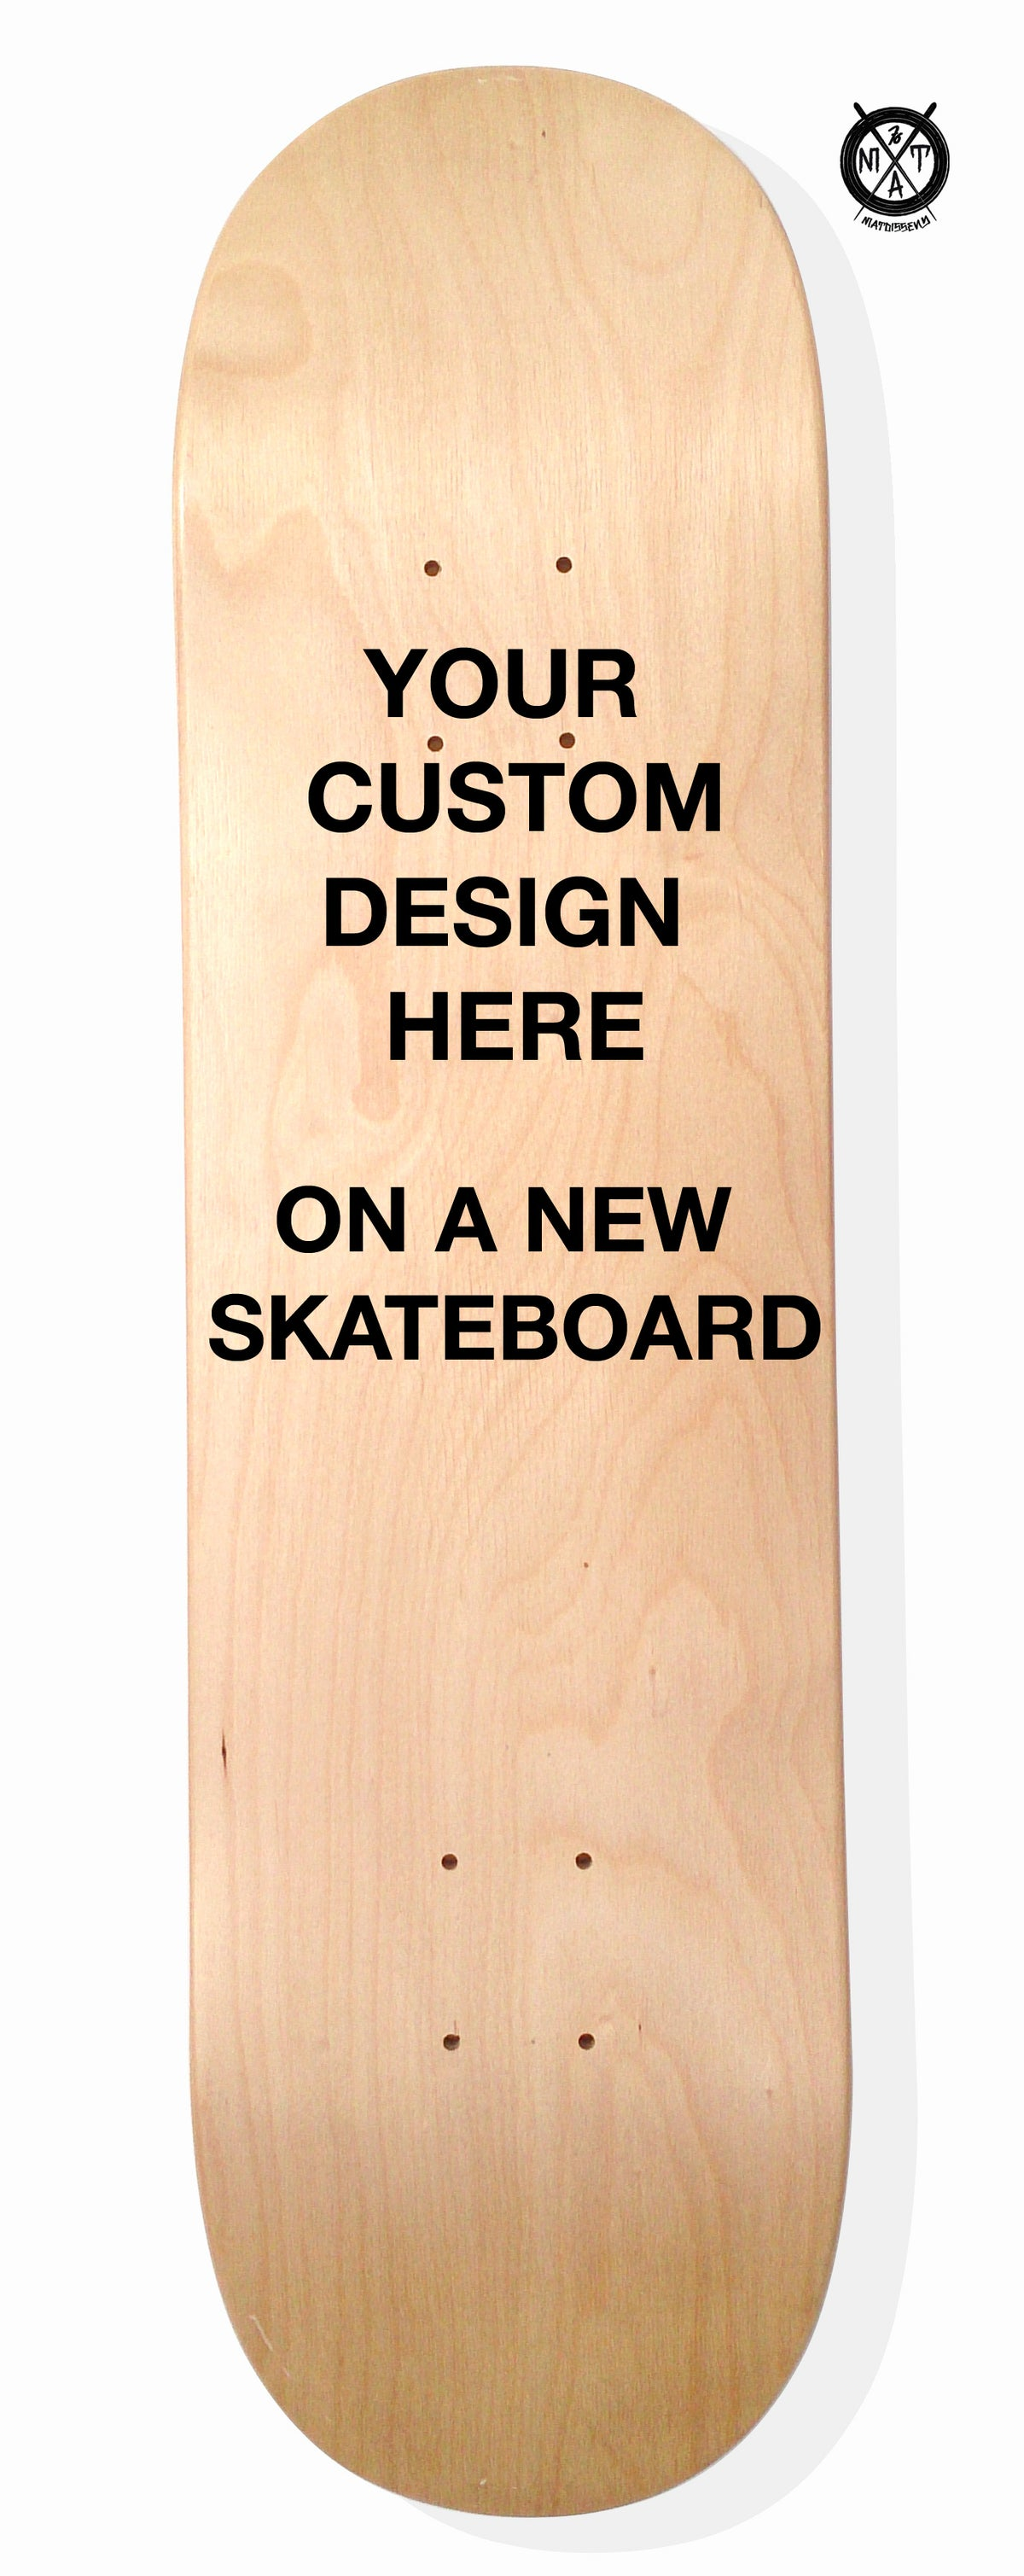 Image of Skate Art (Commision Artwork on a New Skateboard) by @matdisseny